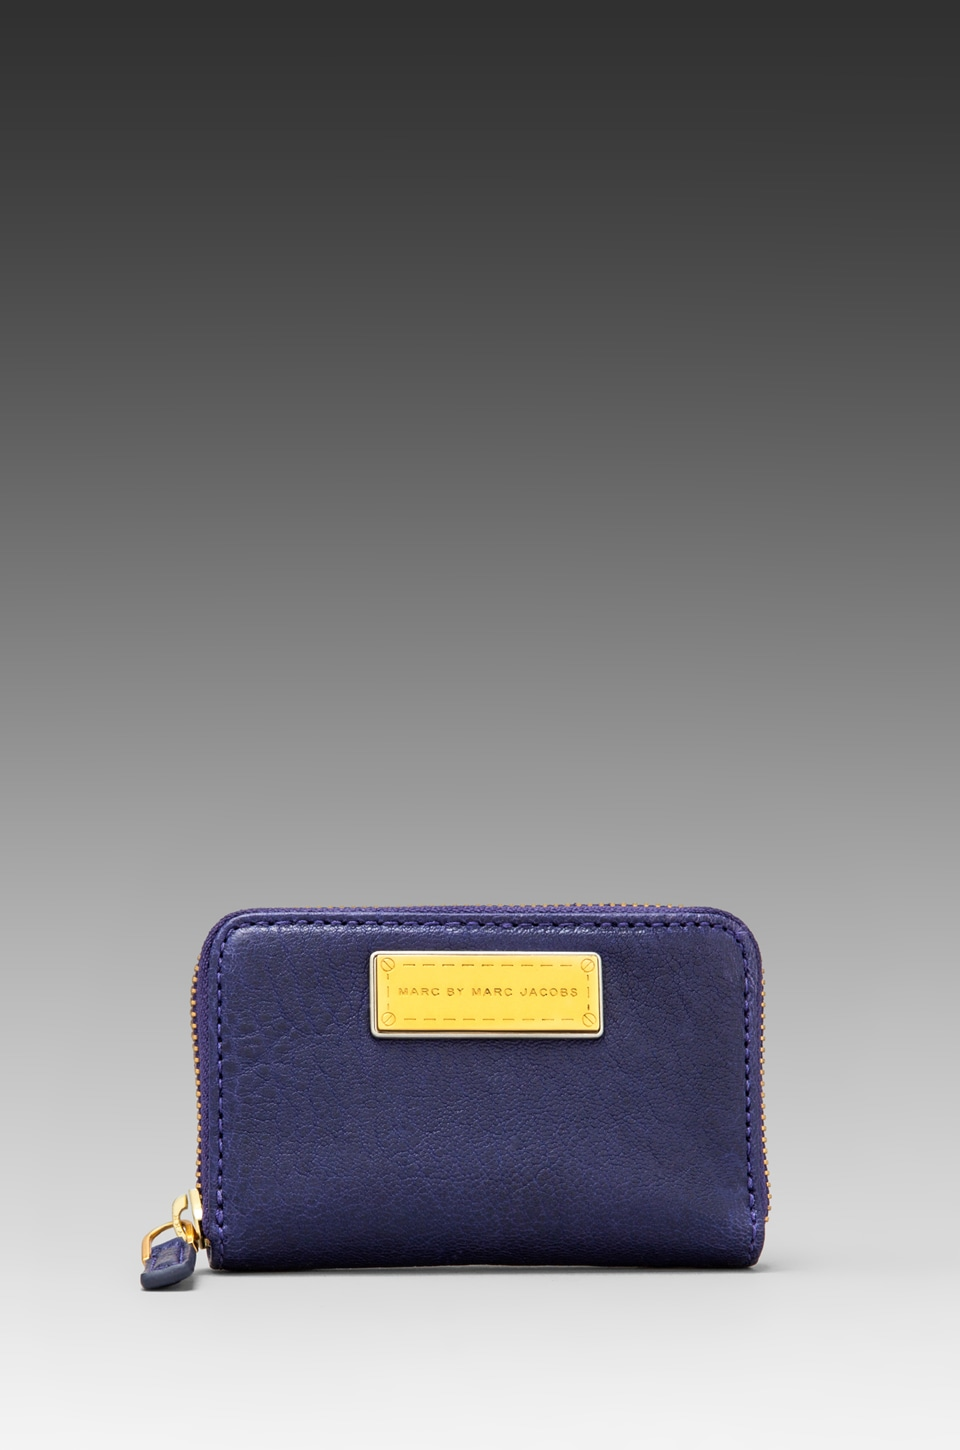 Marc by Marc Jacobs Washed Up Zip Card Case in Electric Stage Blue